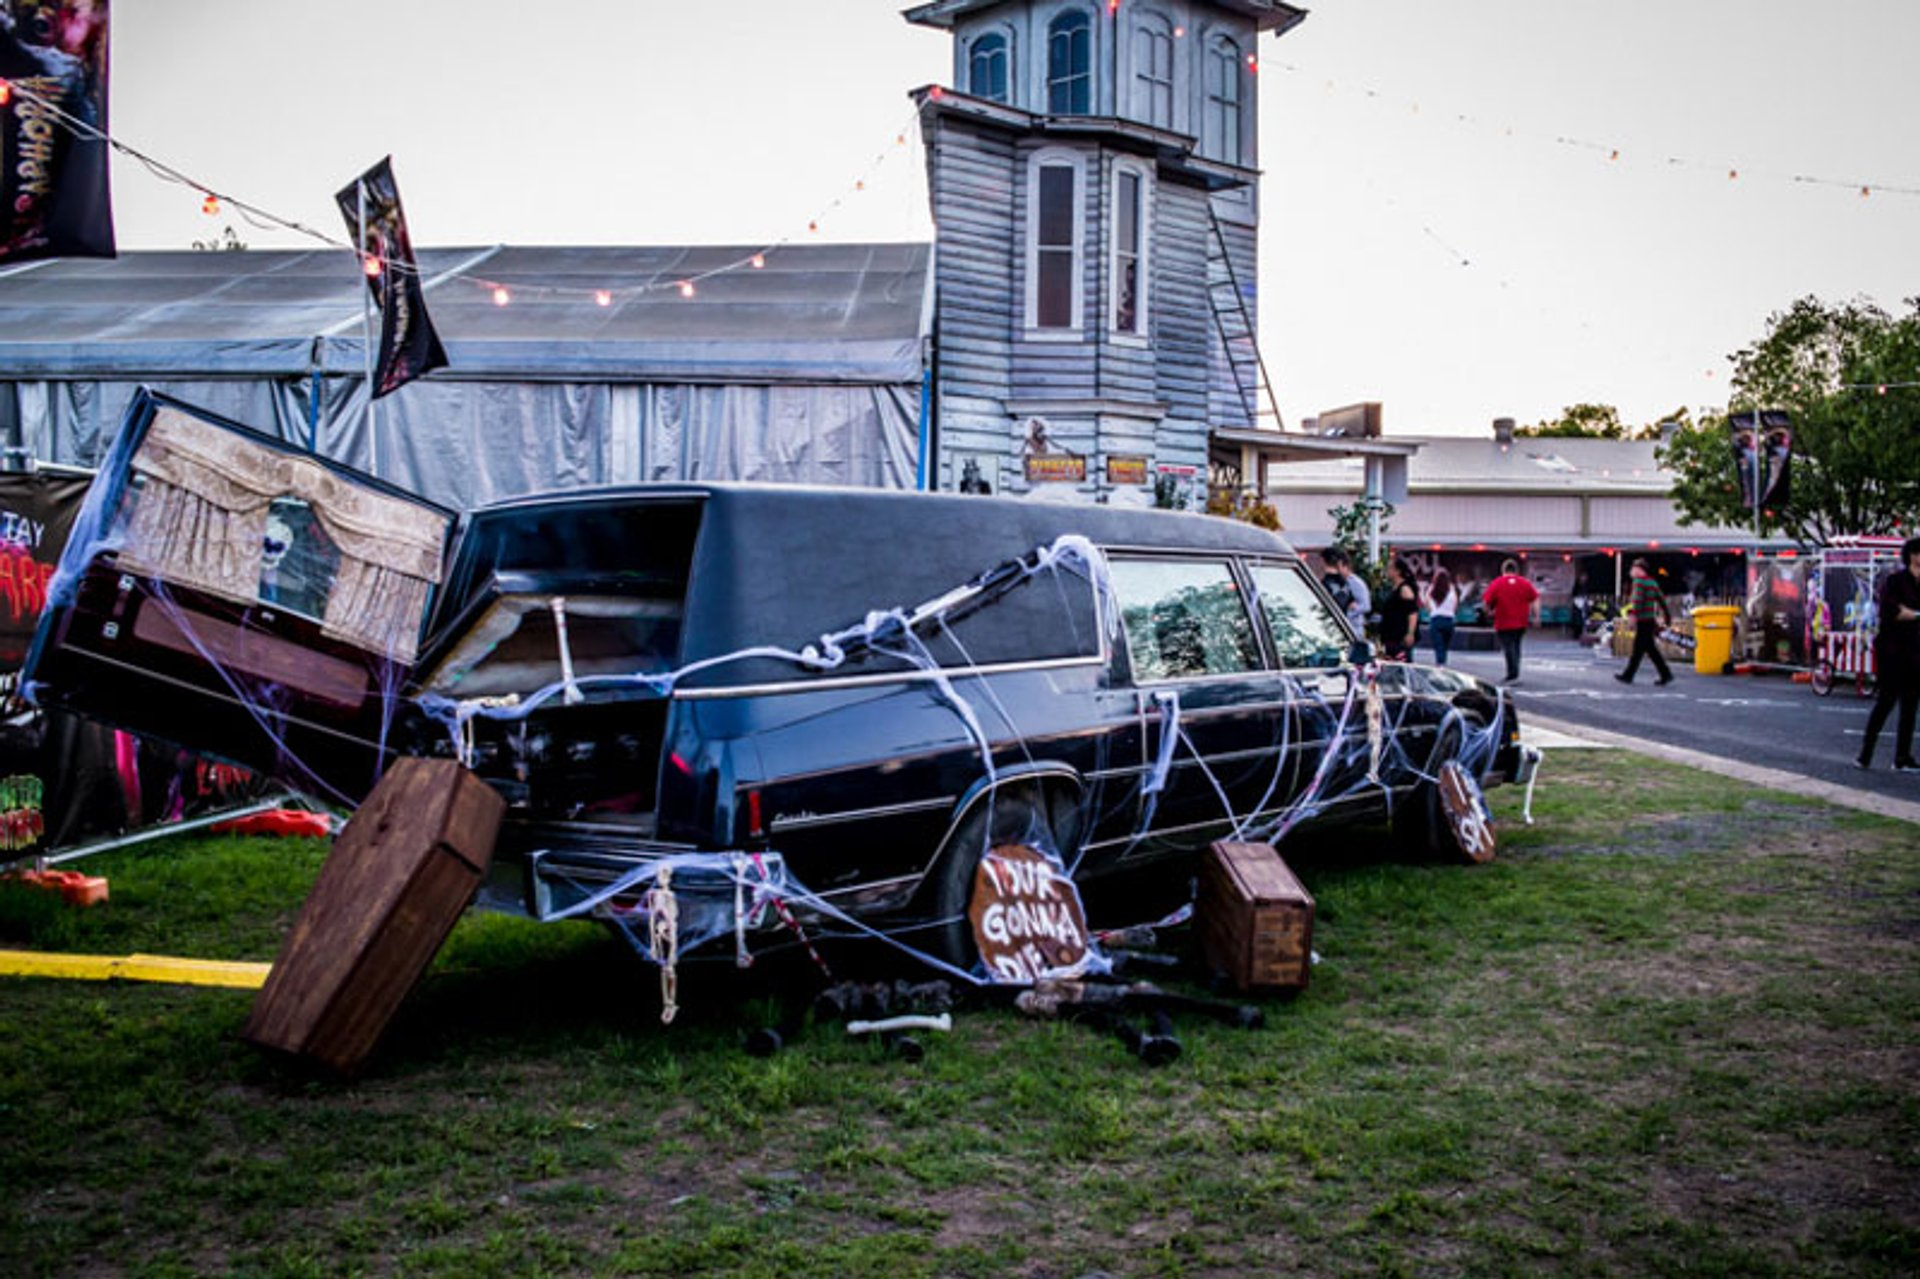 Hearse at the Fearaphobia 2020